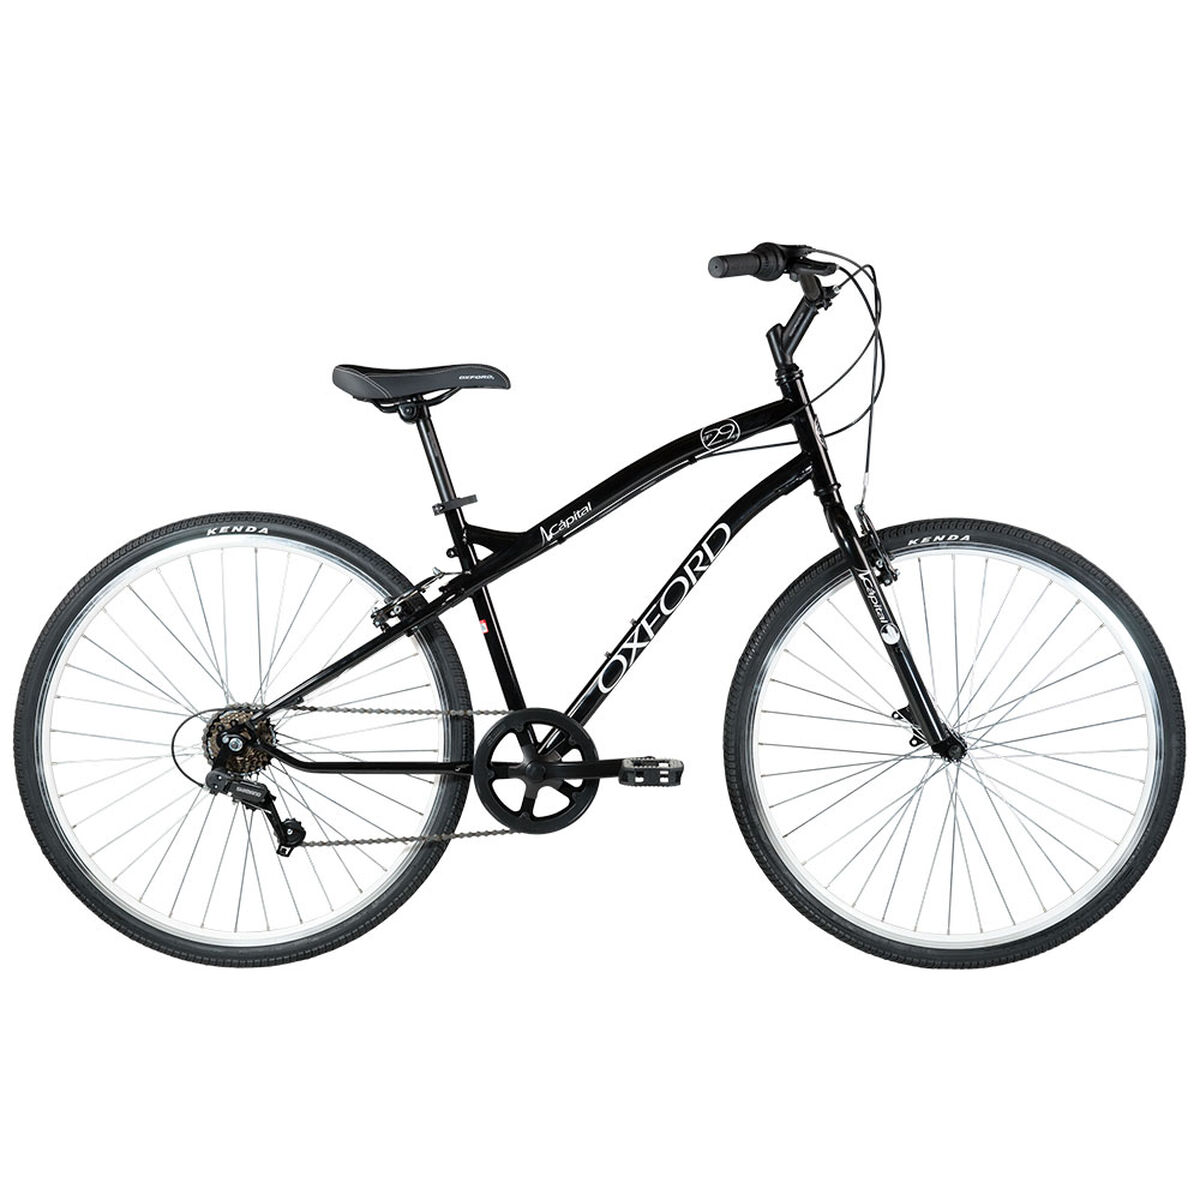 Bicicleta Oxford Hombre Capital BP2943 Aro 29